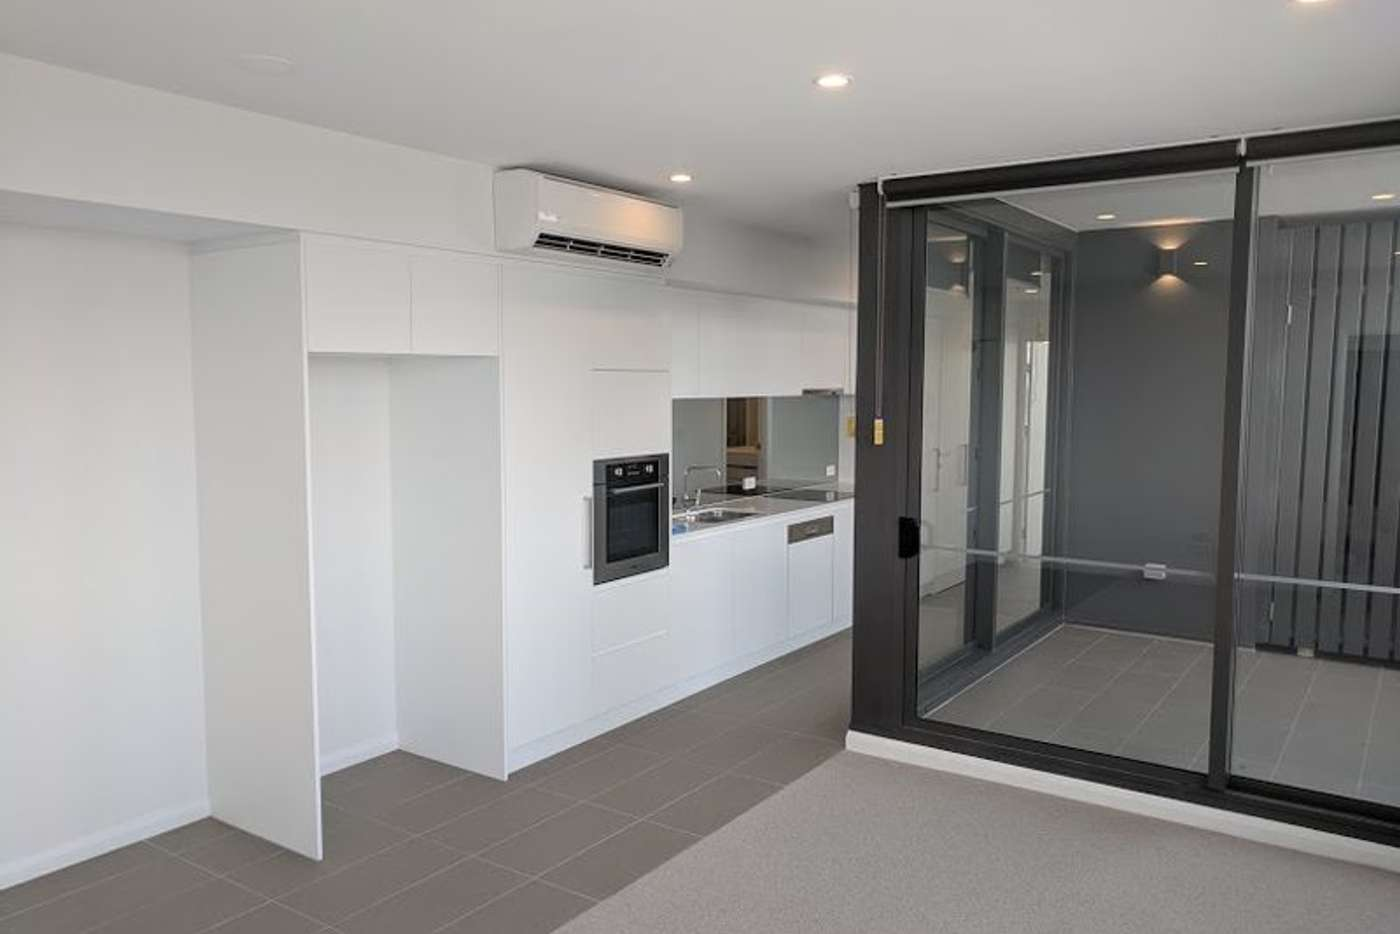 Main view of Homely apartment listing, 10607/300 Old Cleveland Road, Coorparoo QLD 4151